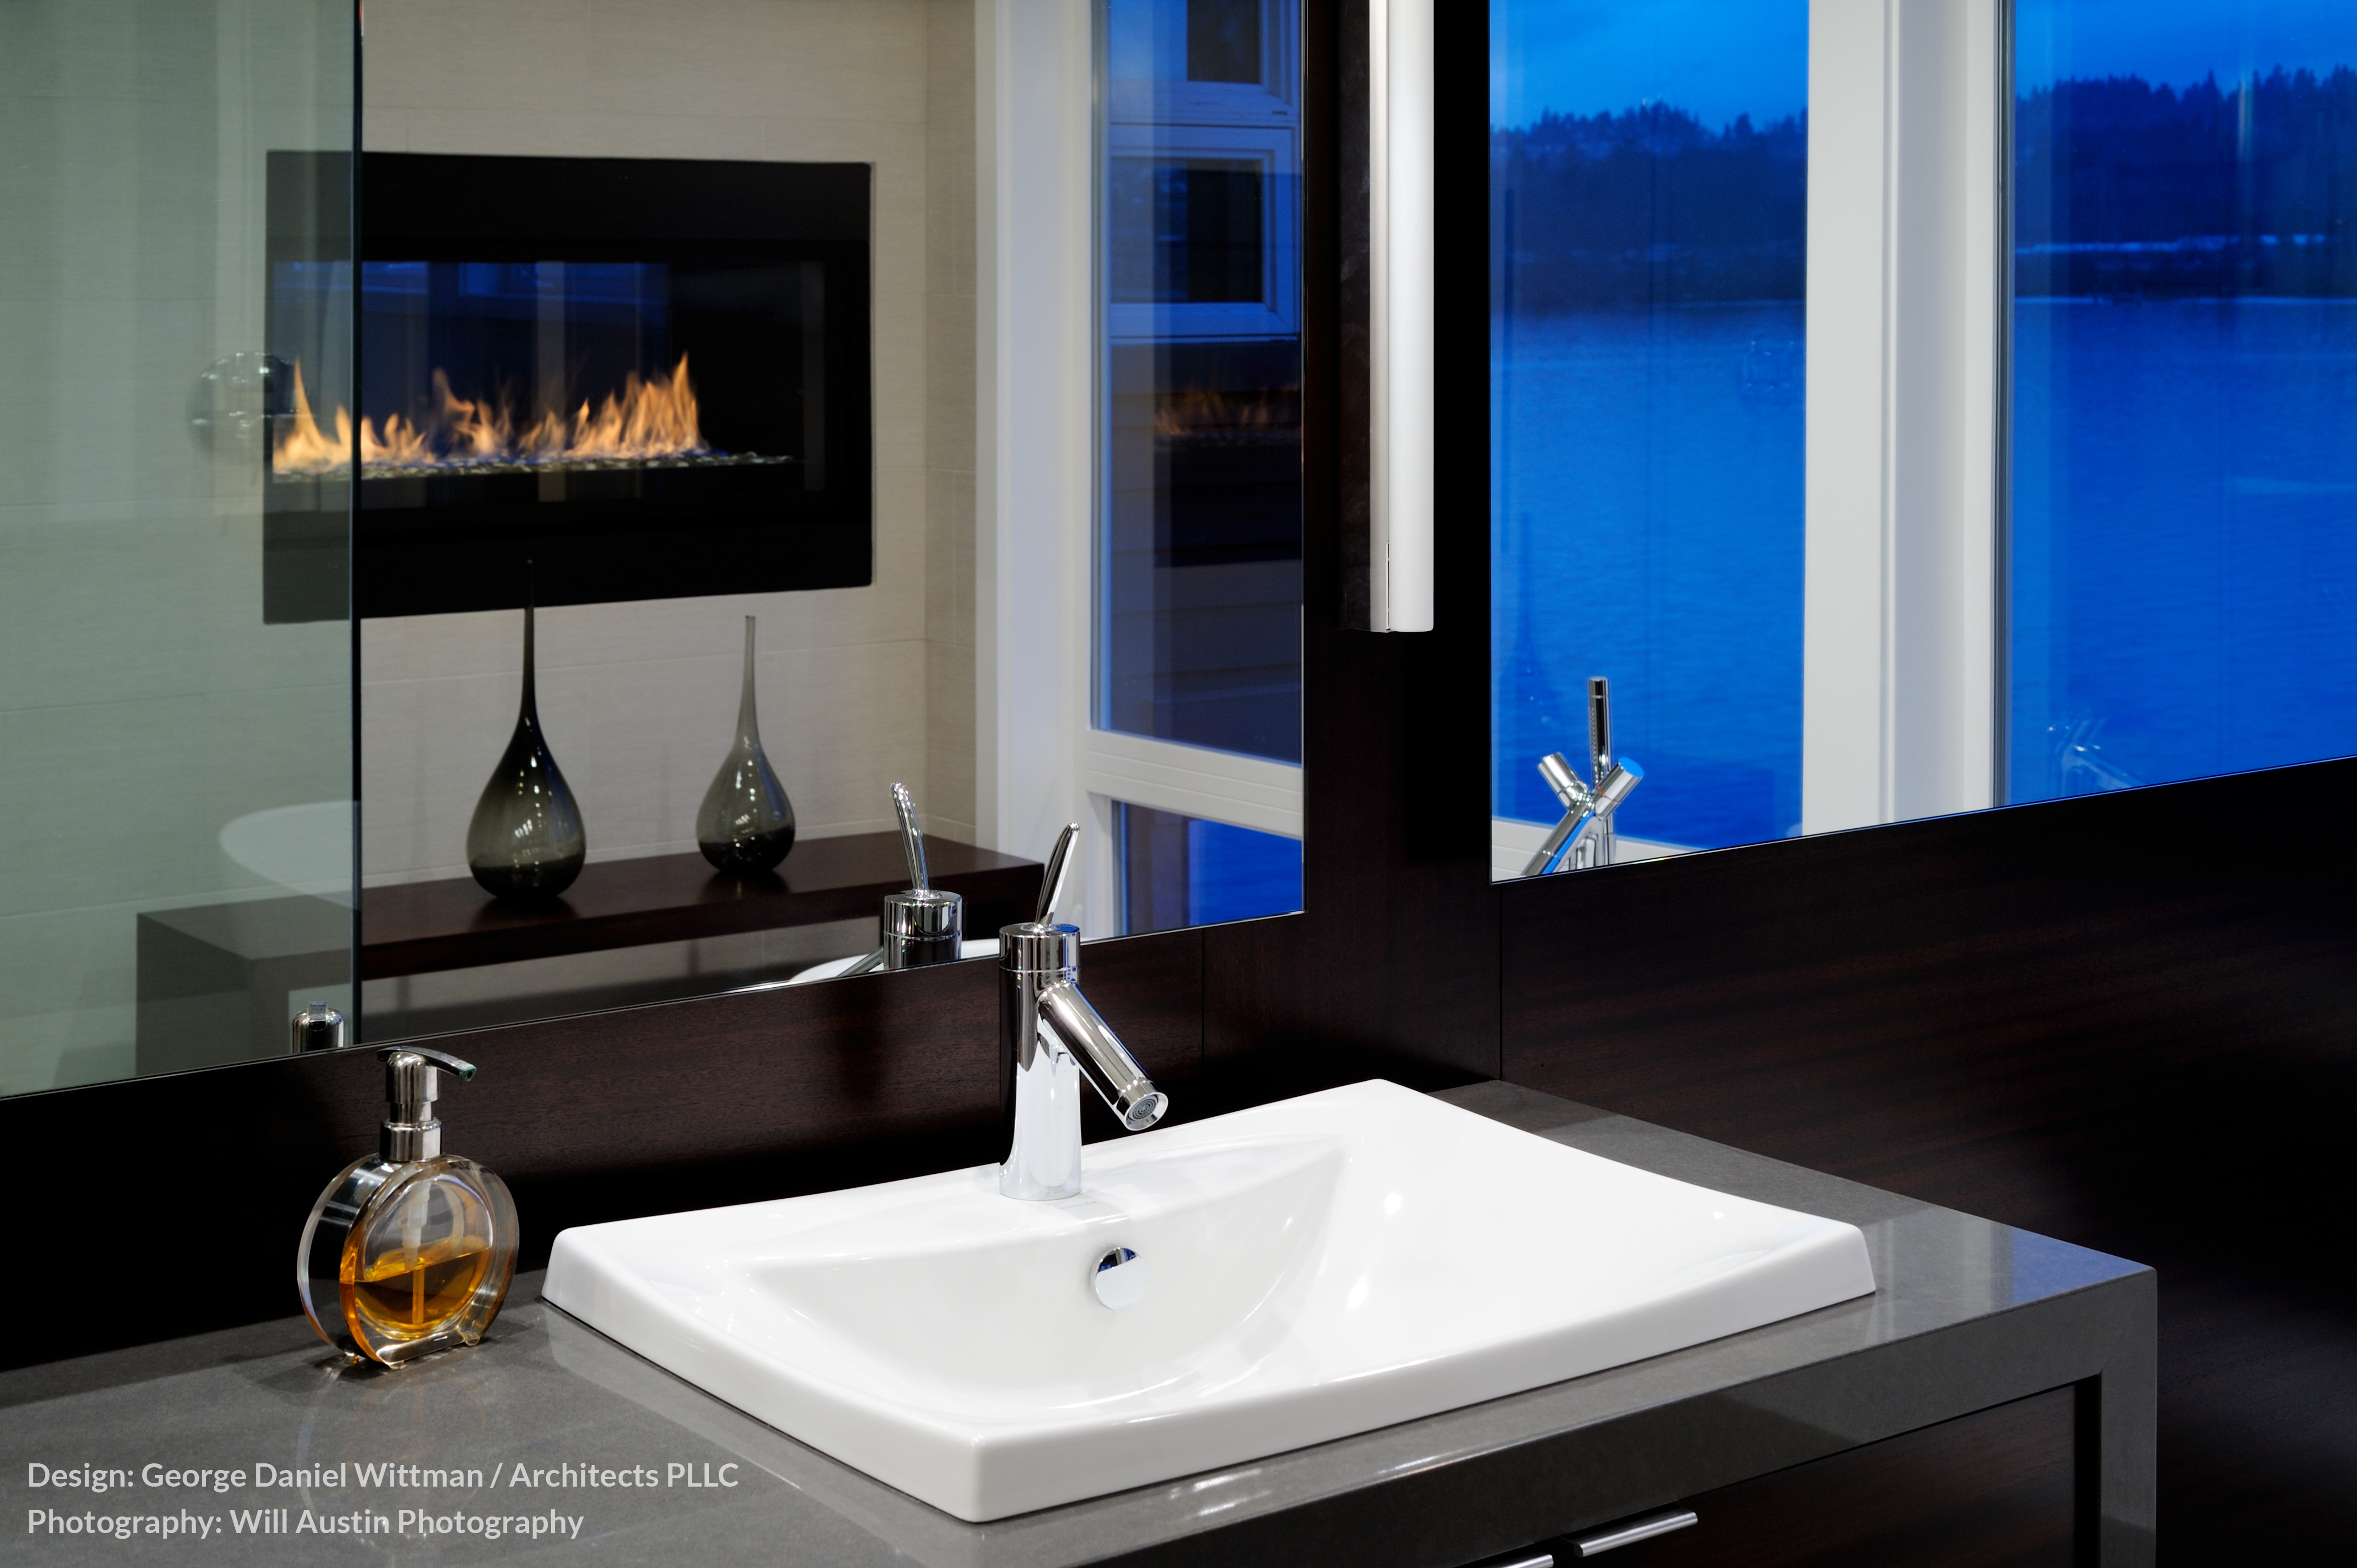 The primary bath, in contrast with the rest of the home, is awash in dark tones. The dual vanity stands below a dark wood wall framing a trio of large mirrors, reflecting the gas fireplace.